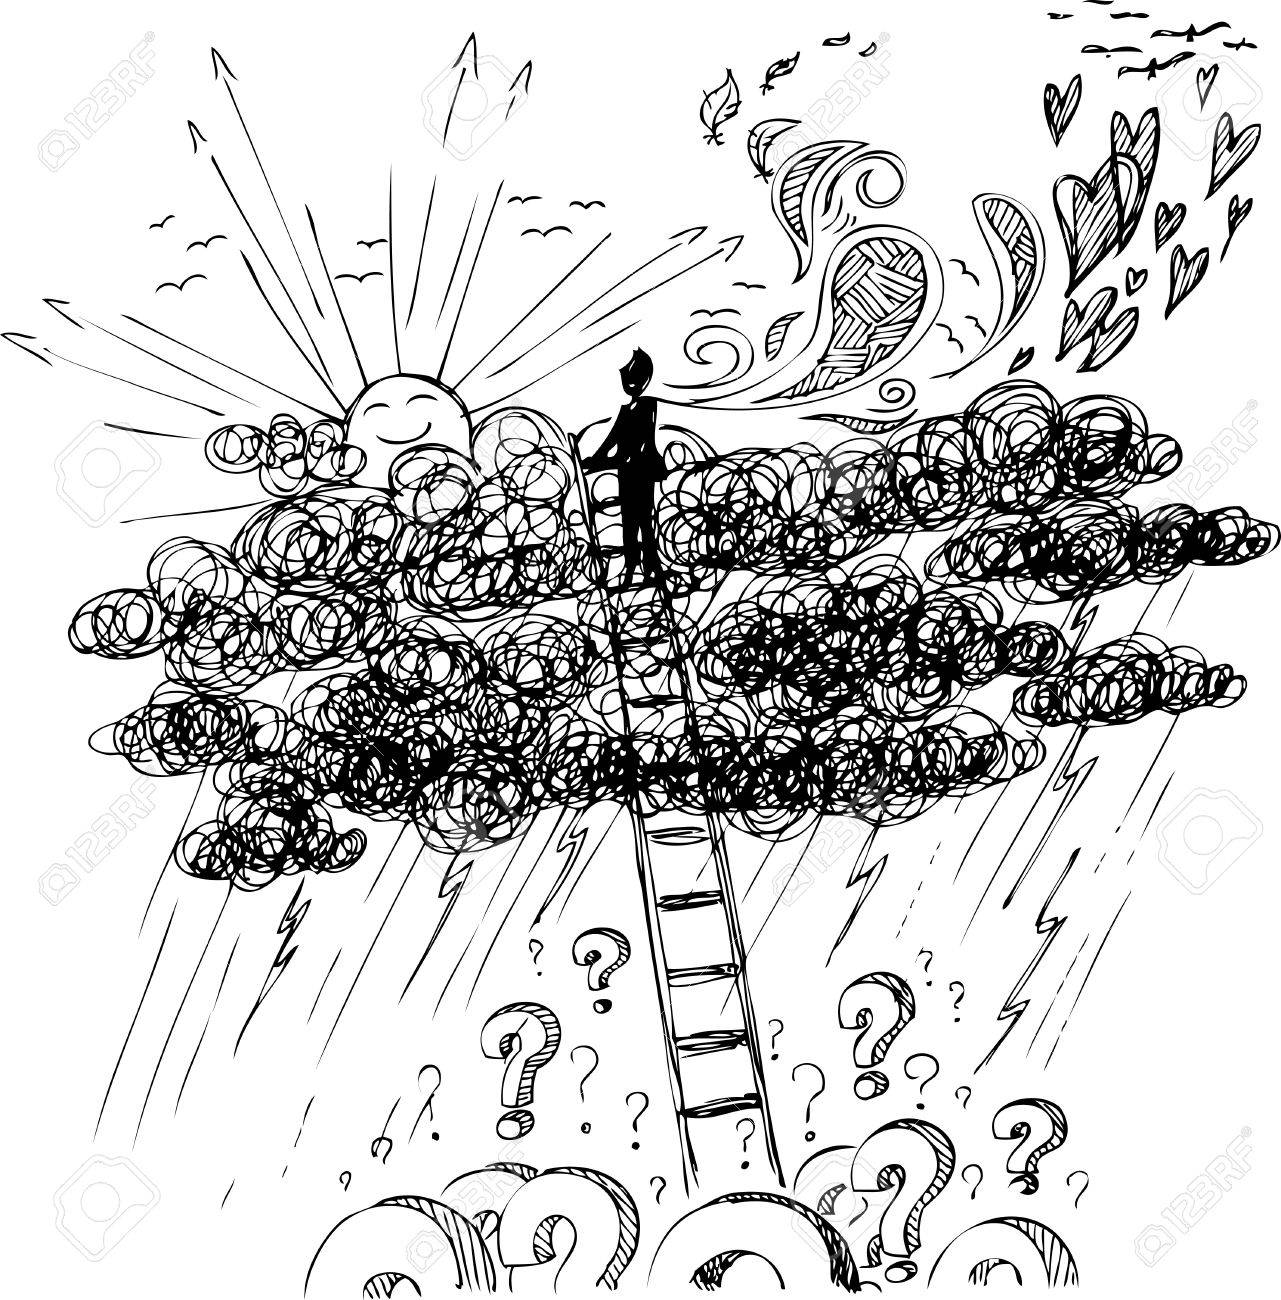 Man reaching the sun with a stair above a storm - 25332453